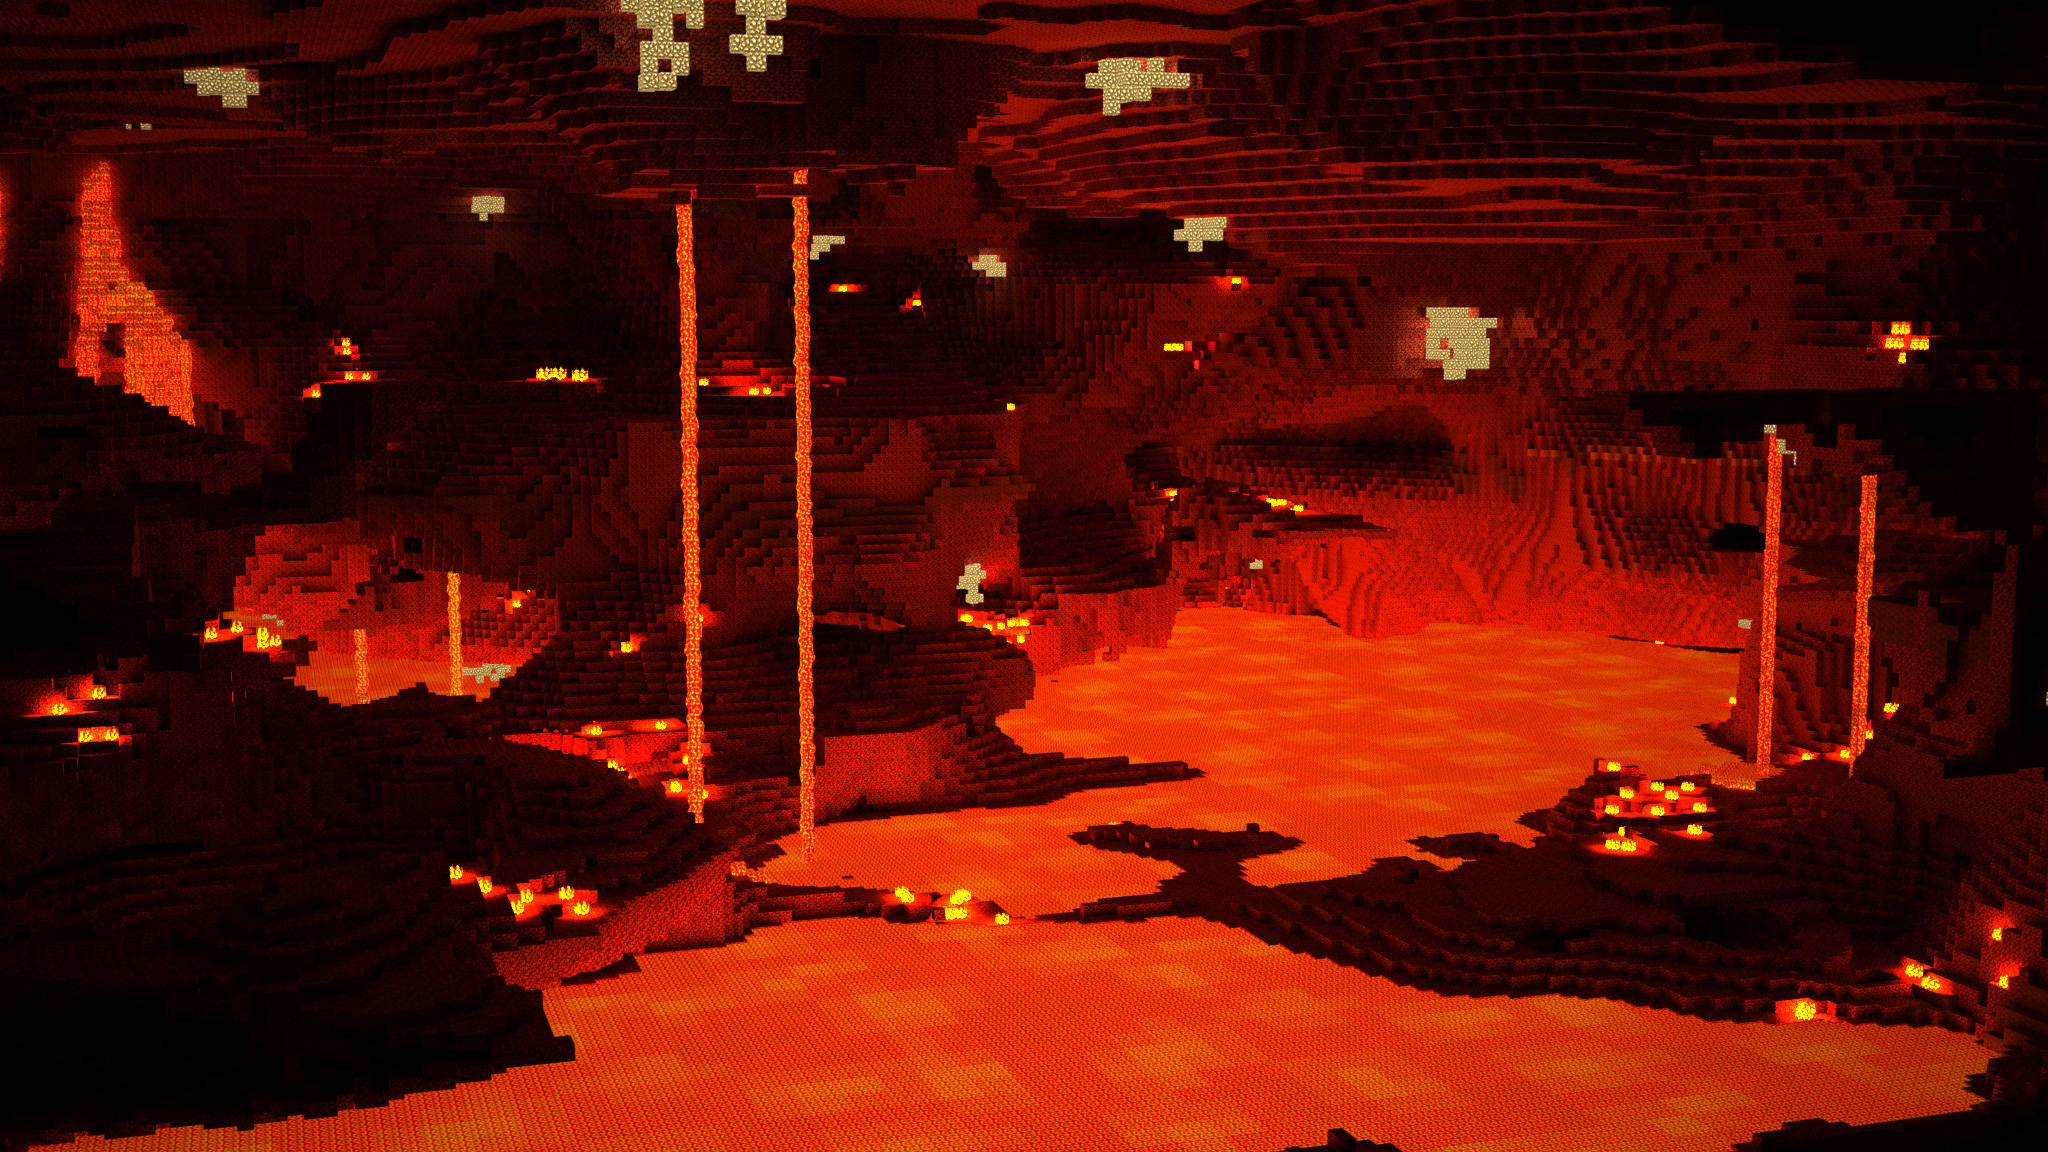 Lava Minecraft 20481152 Wallpaper 1611568 2048x1152